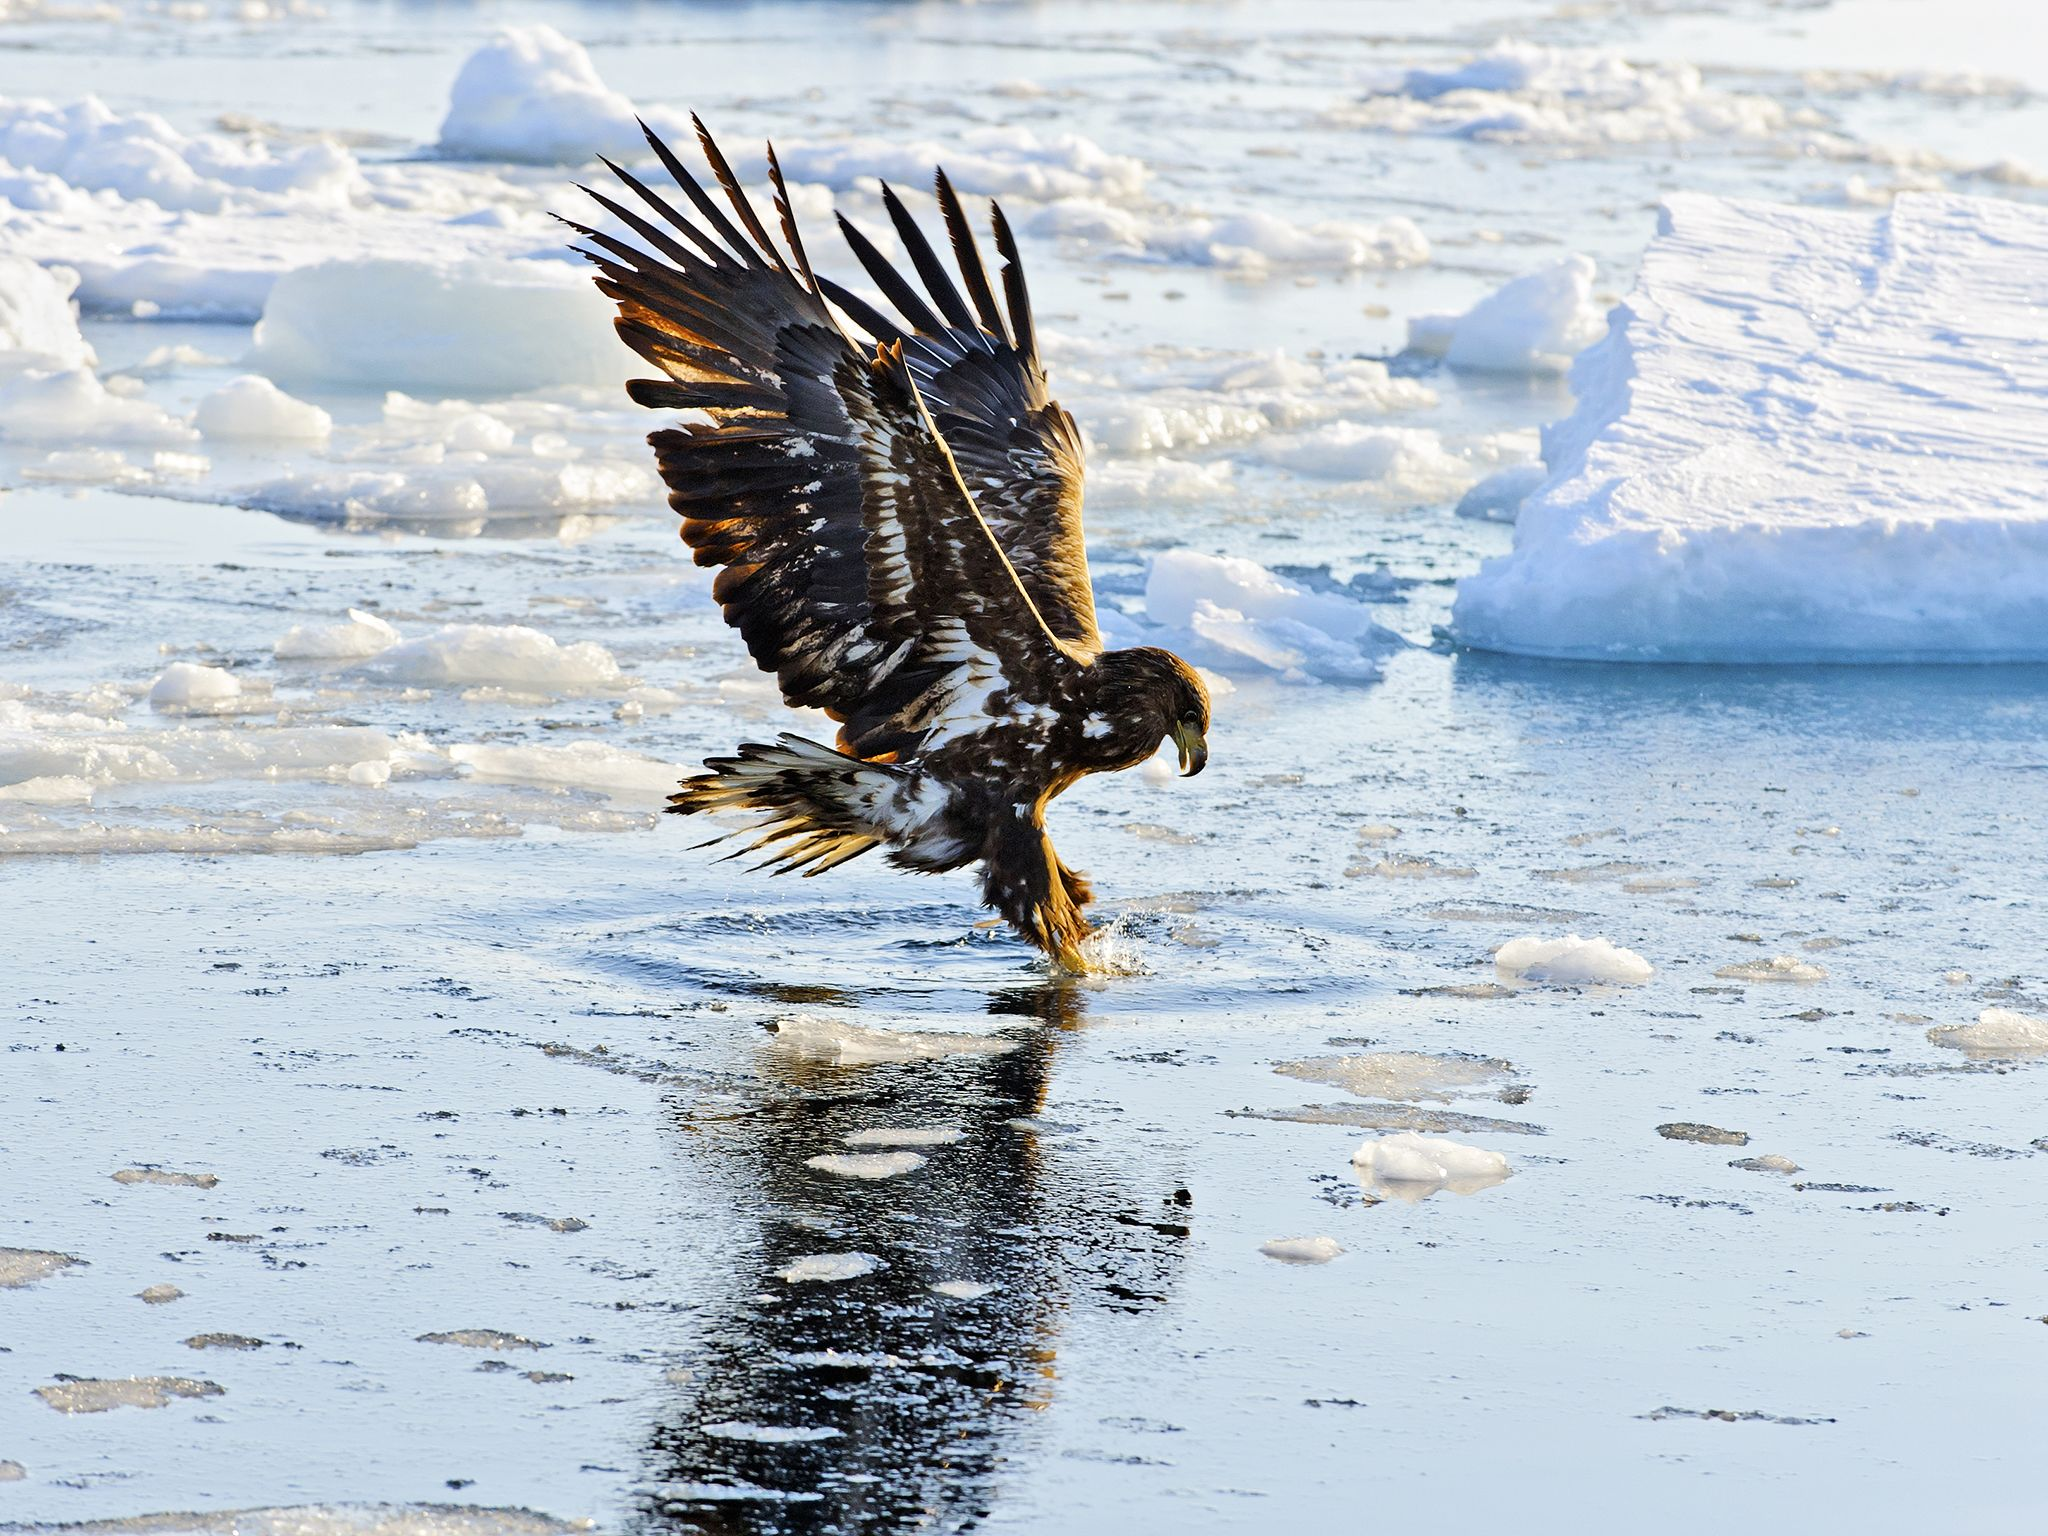 A White tailed eagle (Haliaeetus albicilla) fishing.  This image is from Winter Wonderland. [Photo of the day - دسامبر 2015]